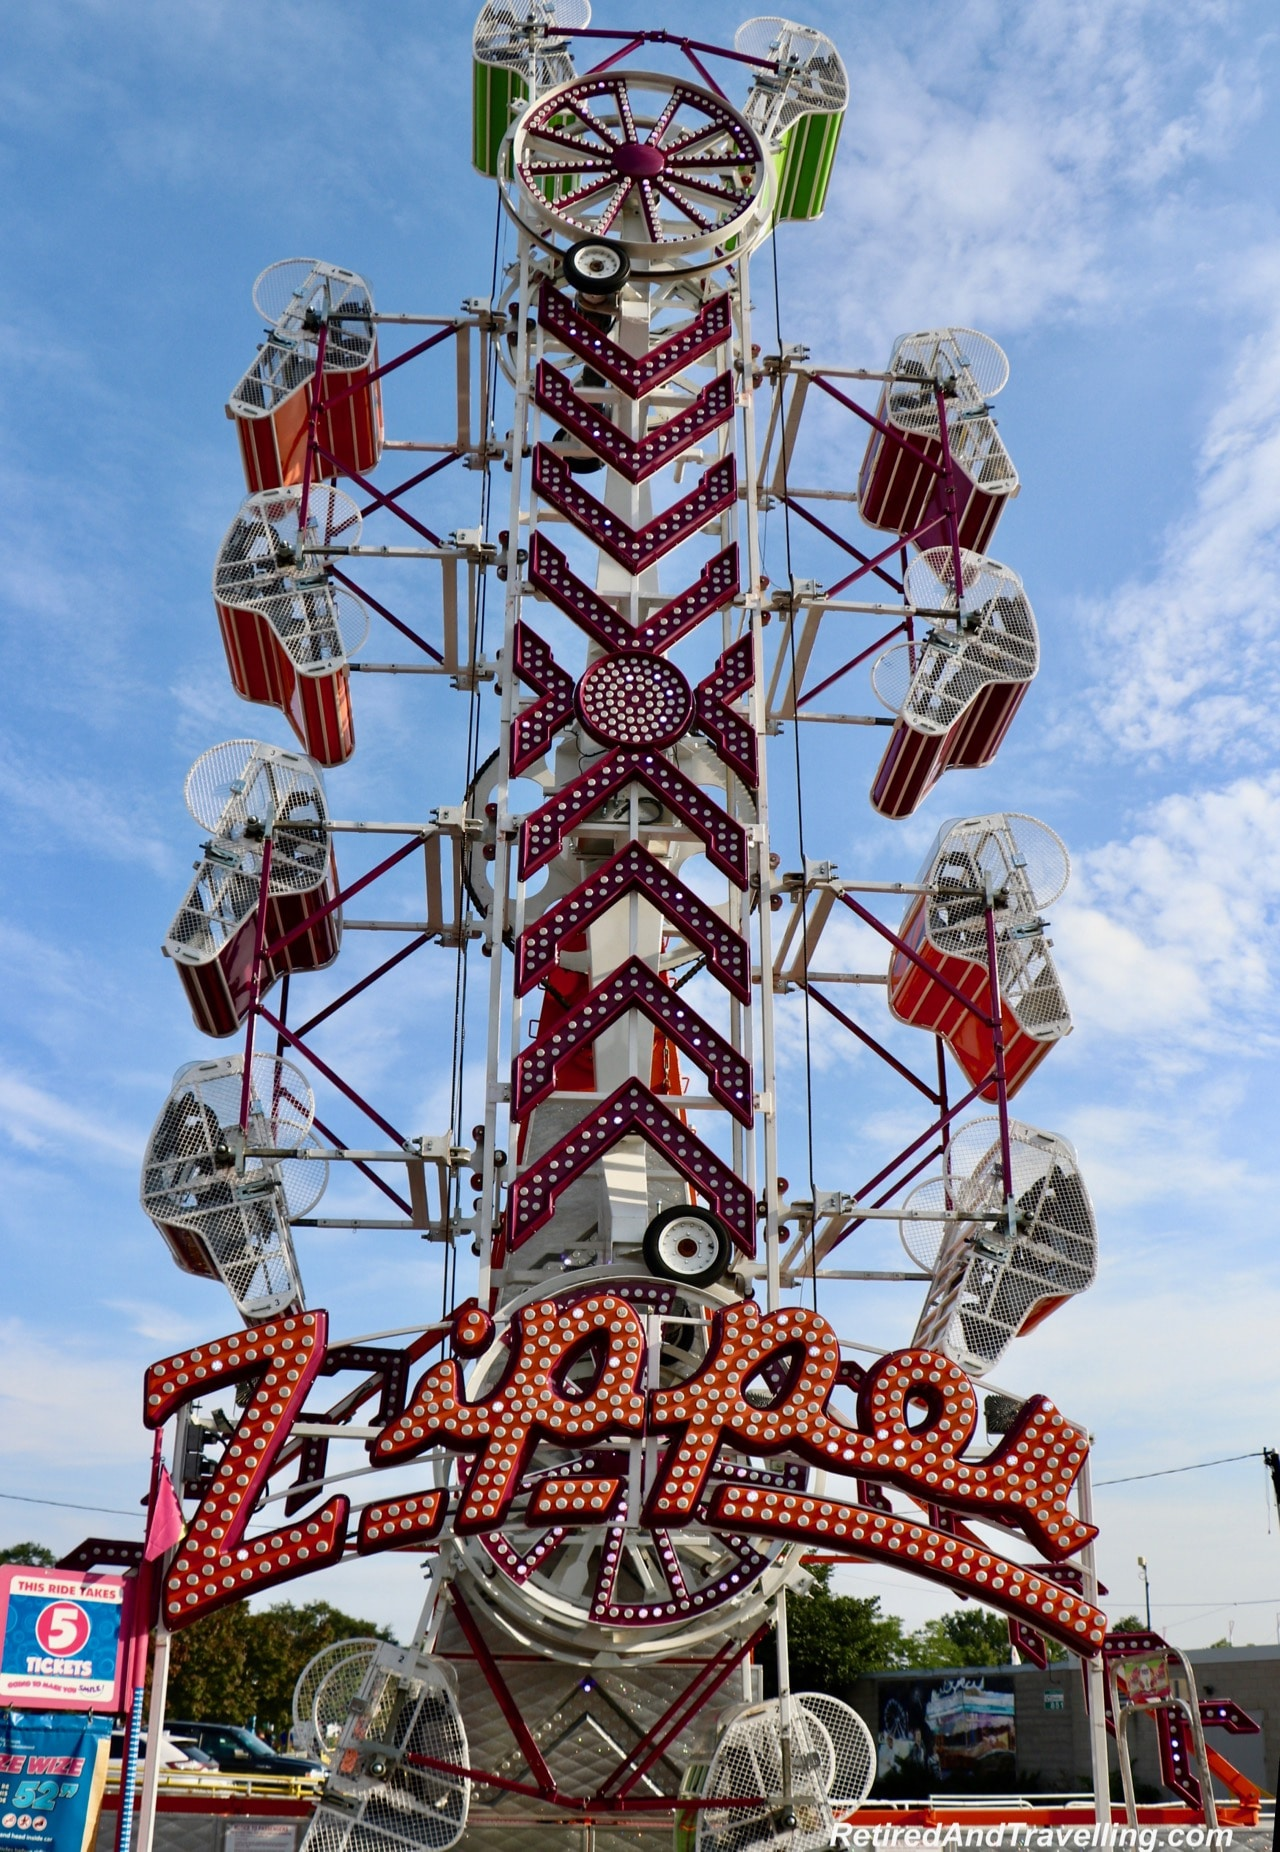 Zipper CNE Rides - Things To Do At The Toronto CNE.jpg